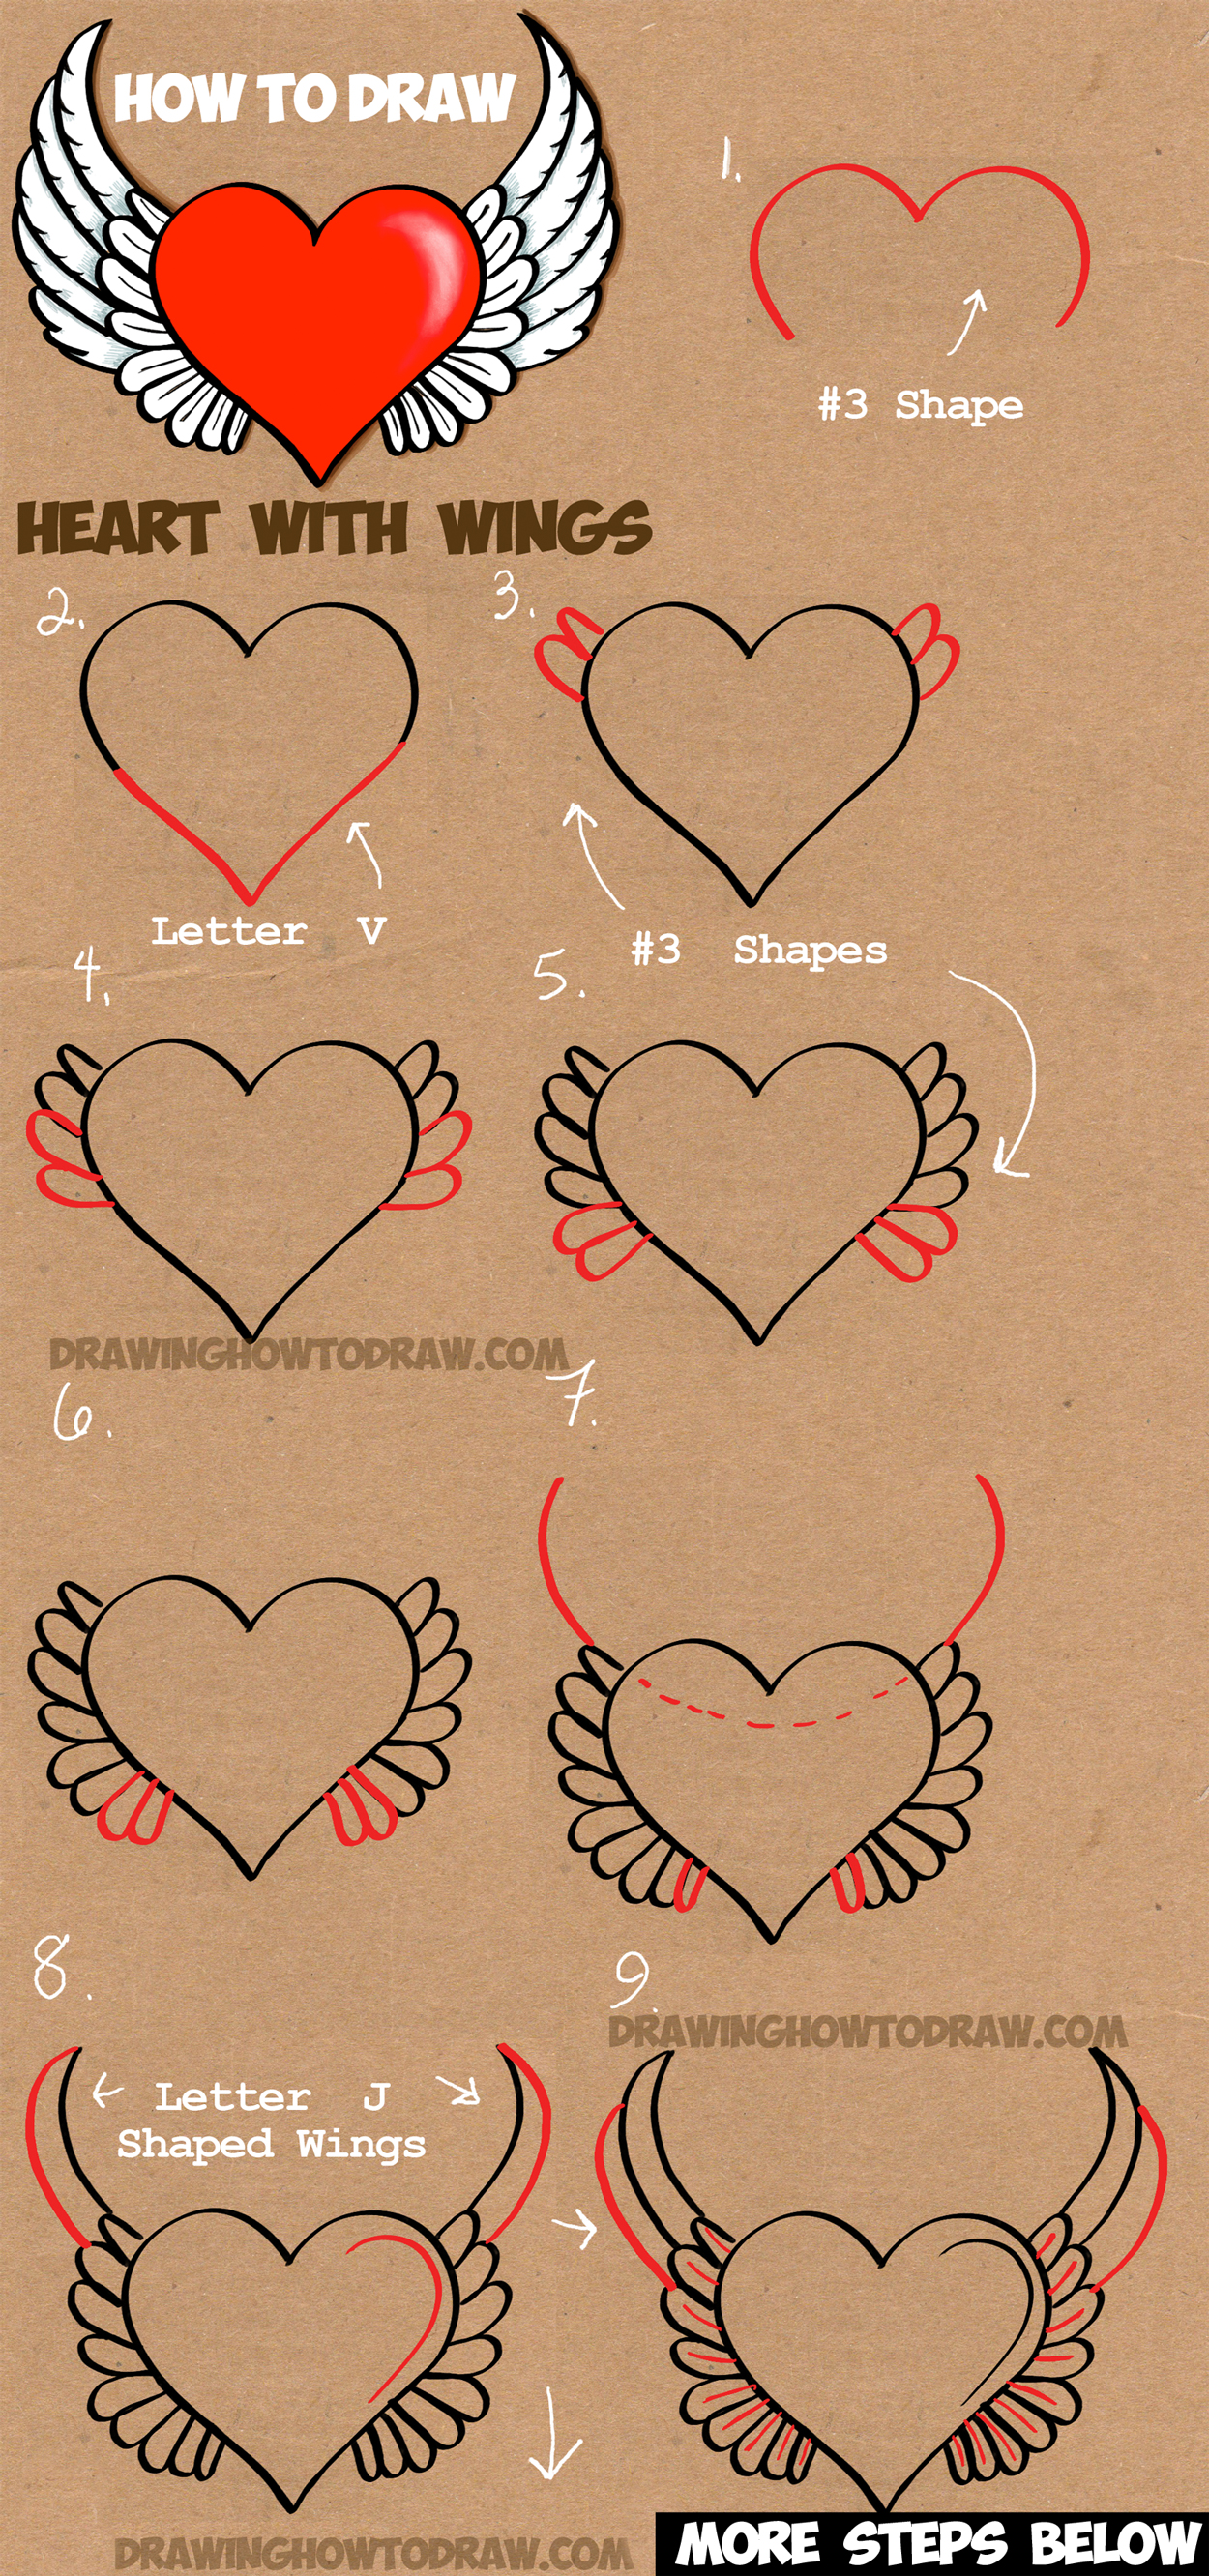 How To Draw A Heart With Wings Easy Step By Step Drawing